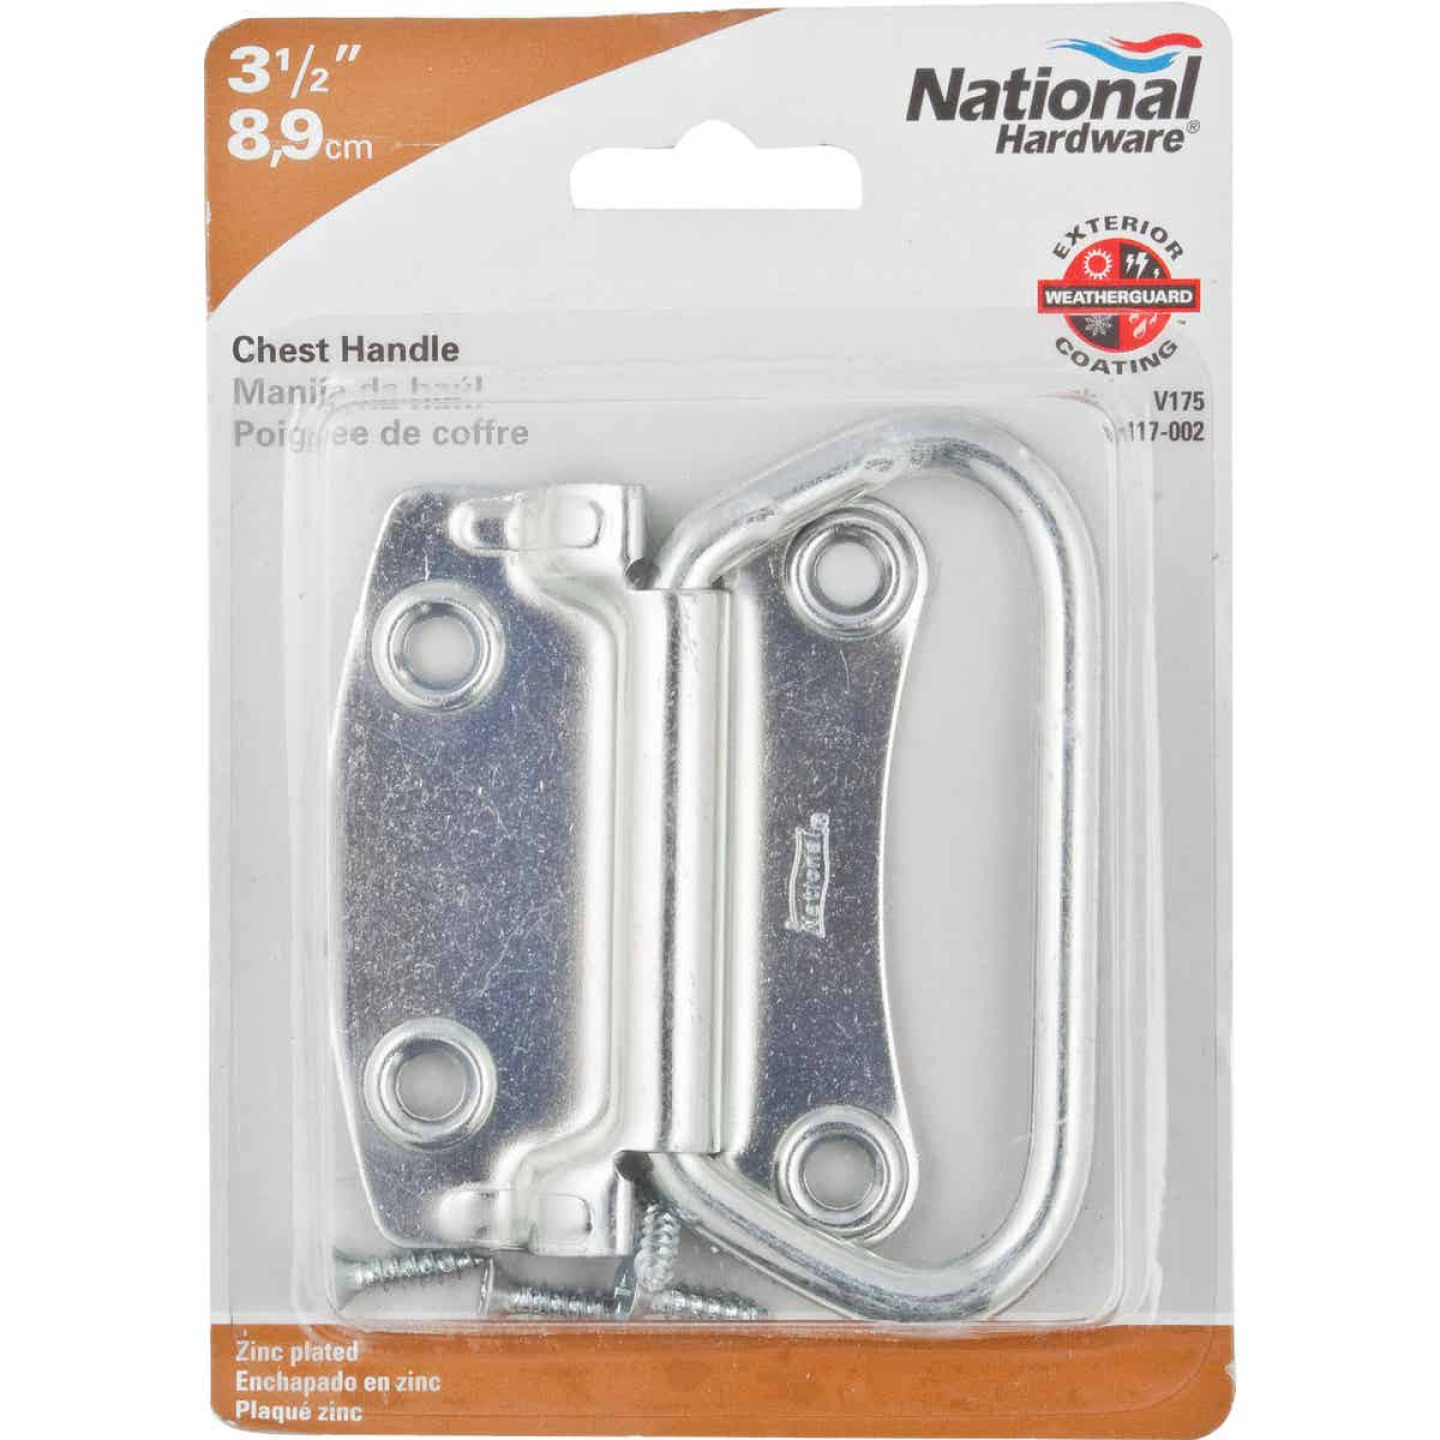 "National 3-1/2"" Chest Handle Image 2"